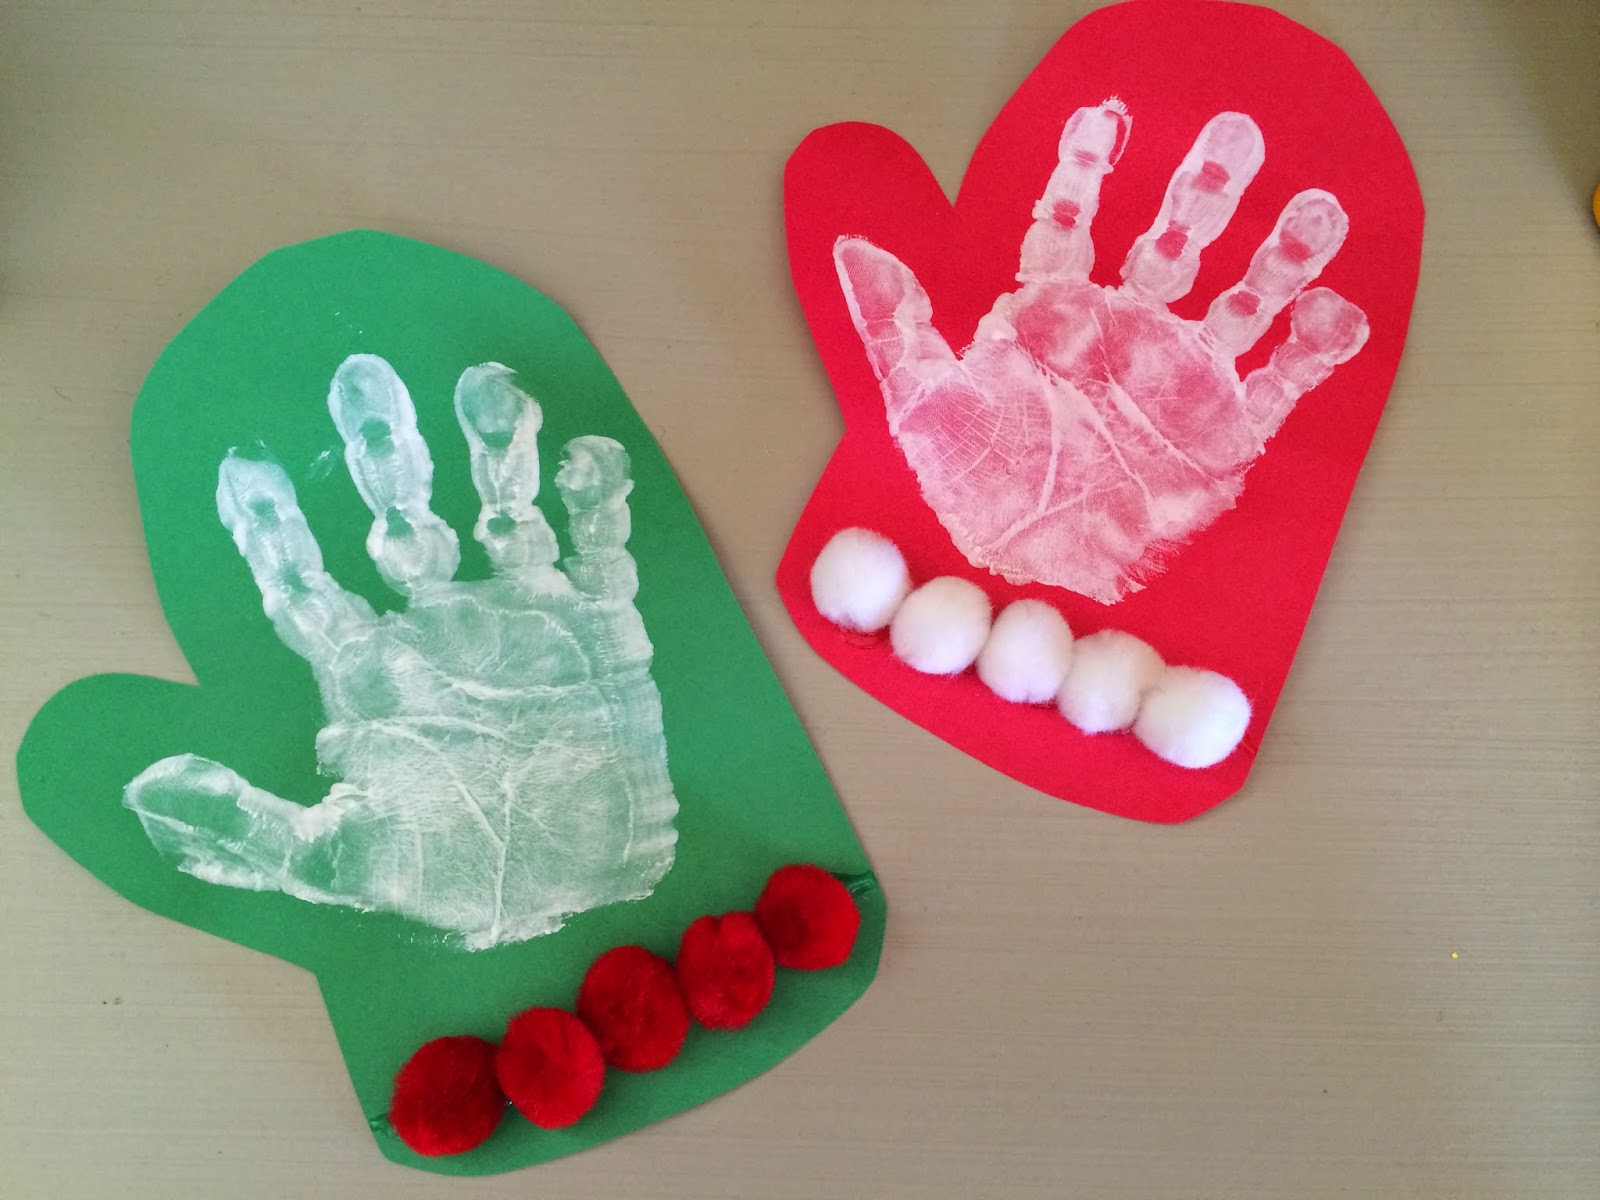 ... paper. Do a white paint handprint & let dry. Add pom poms